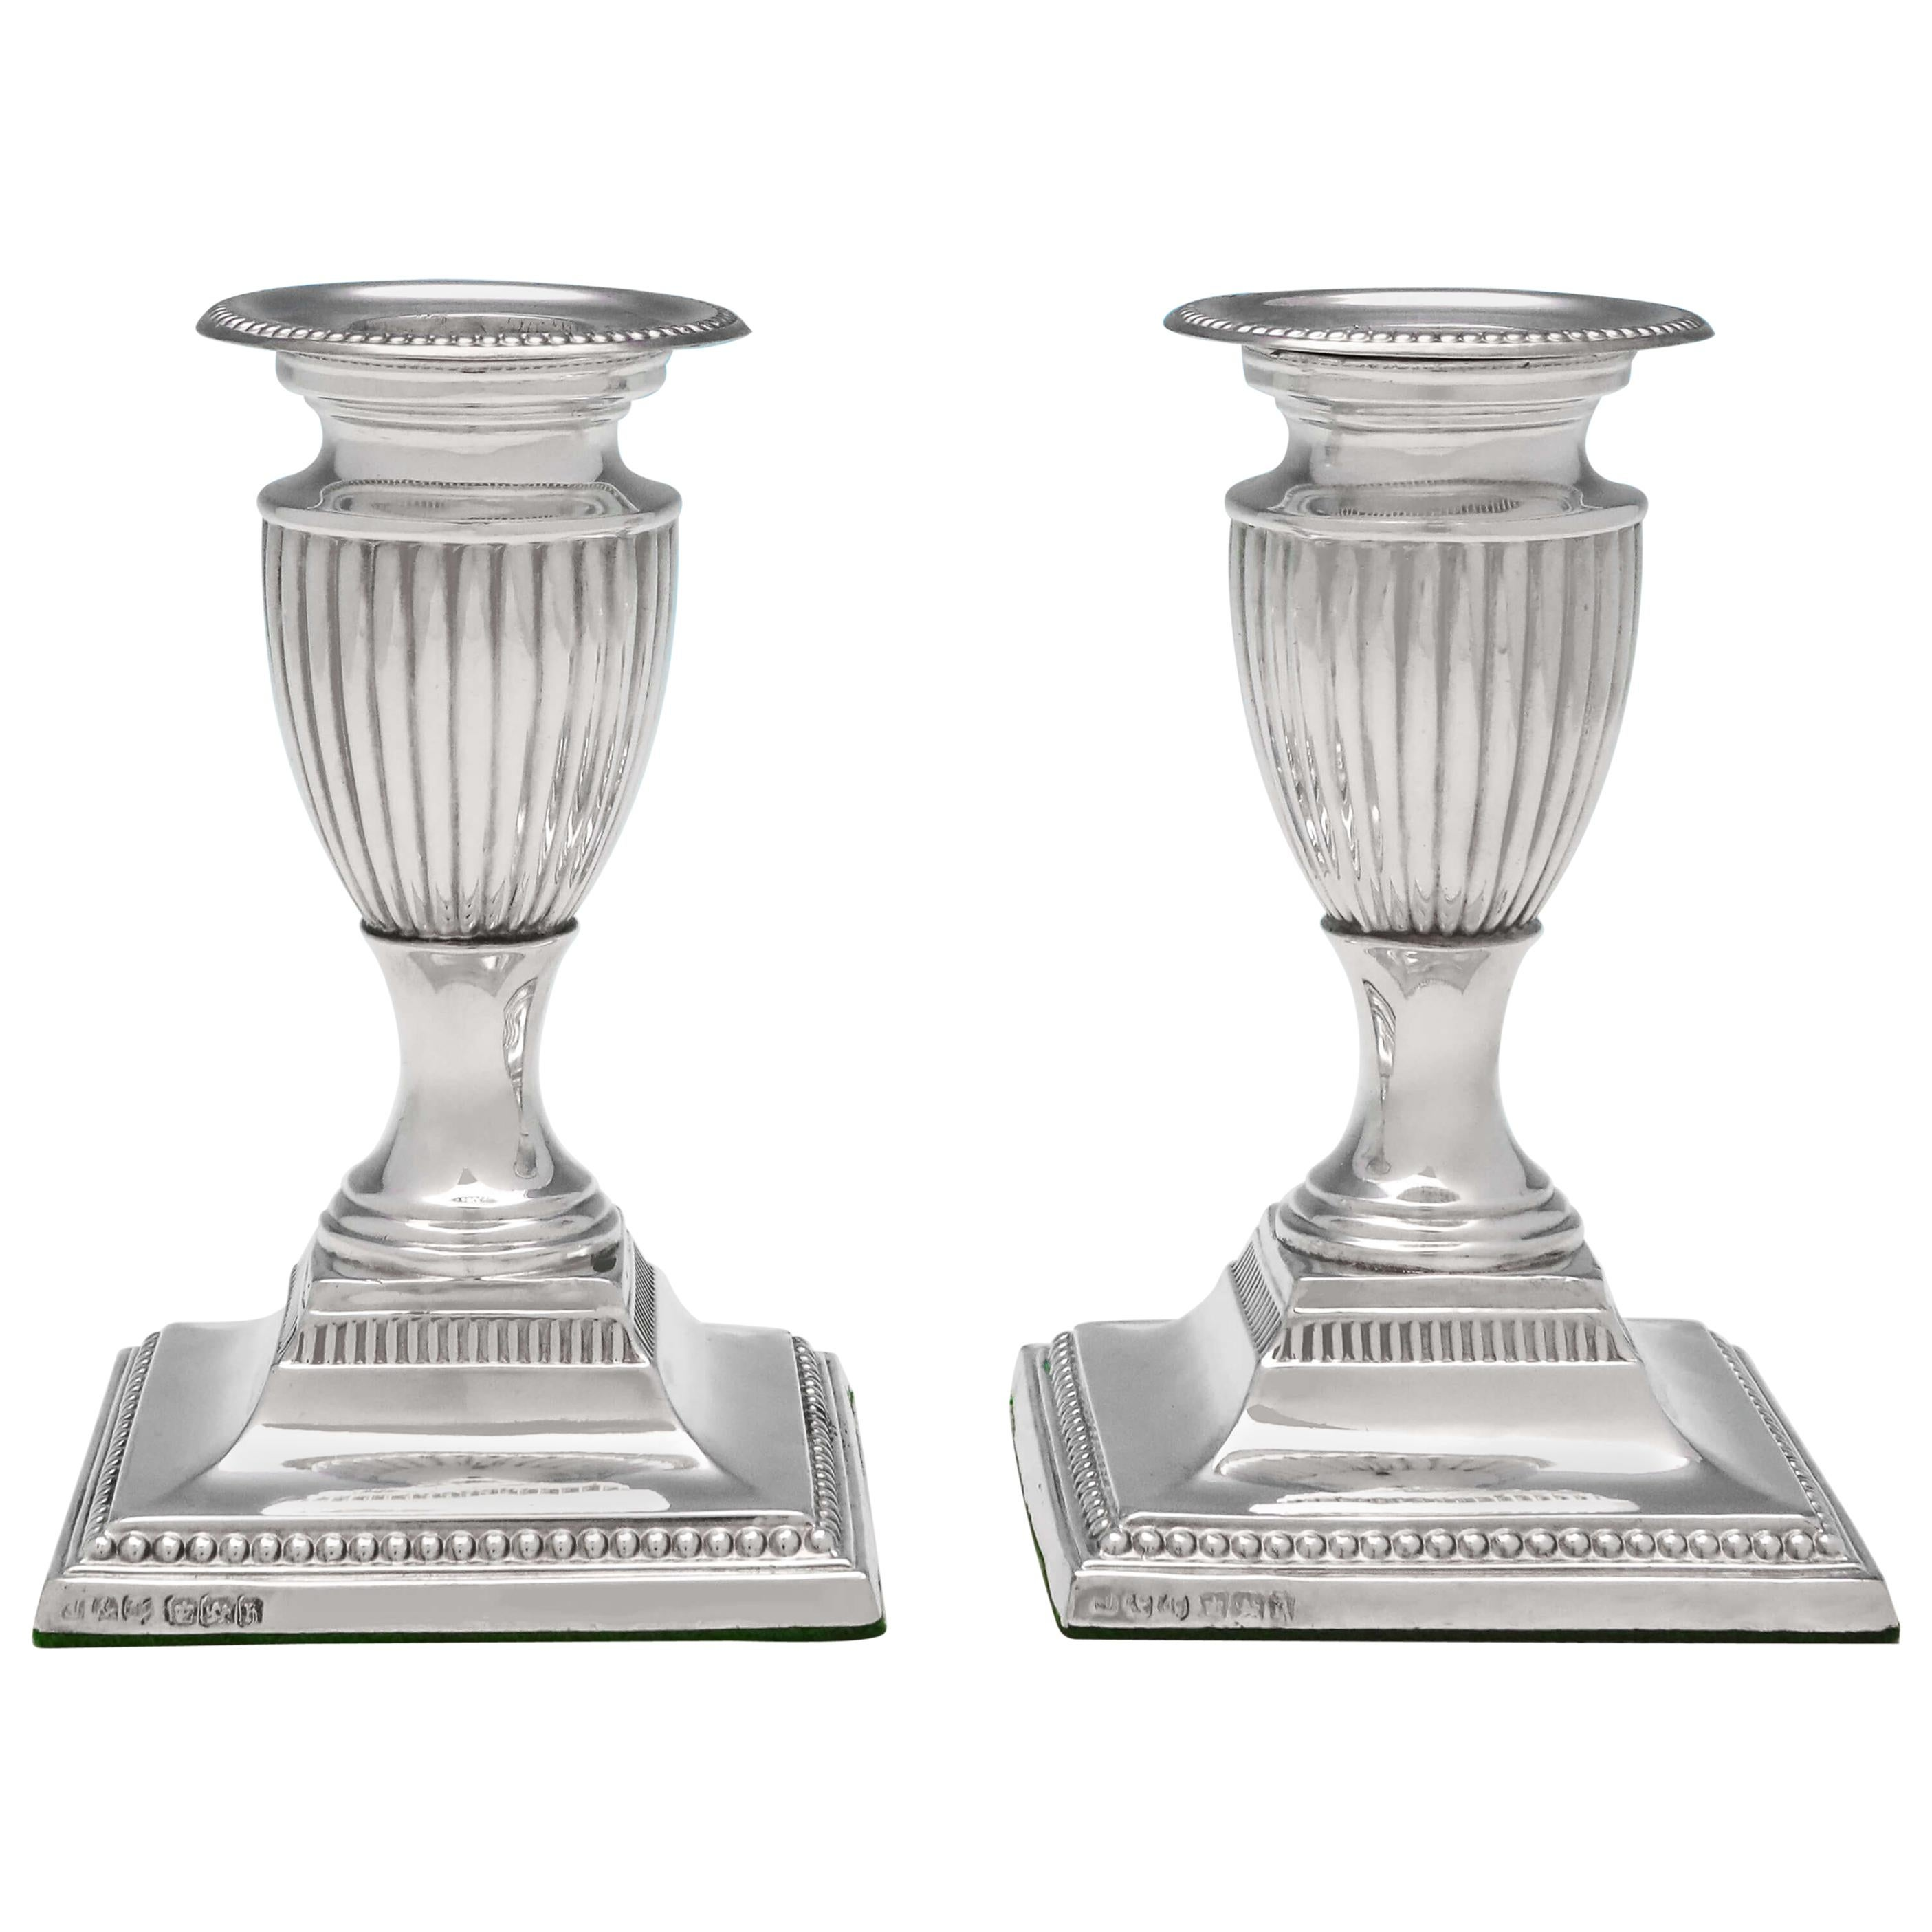 Victorian Antique Sterling Silver Pair of 'Piano' Candlesticks from 1900